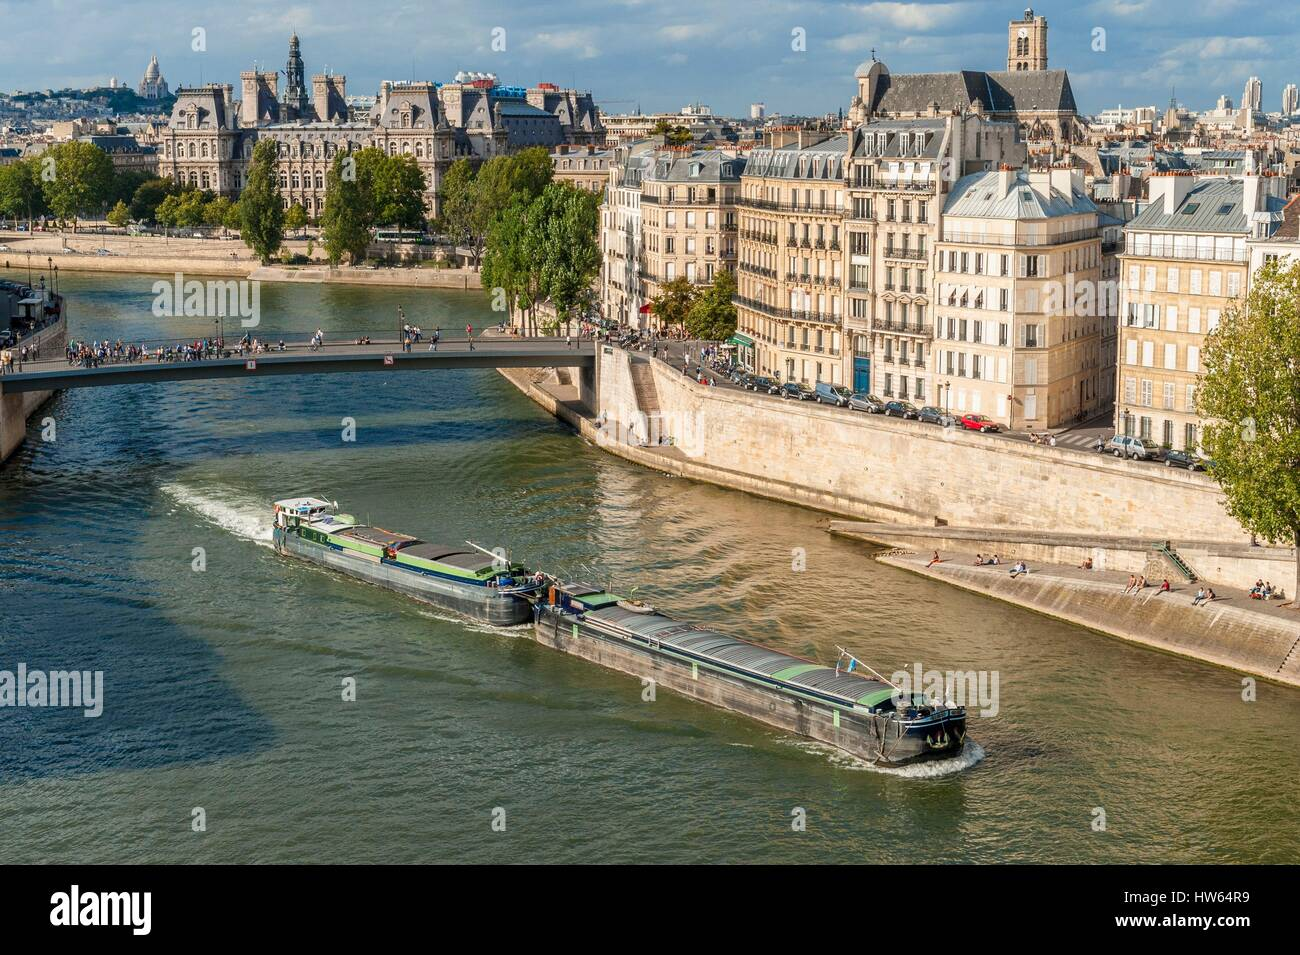 France, Paris, river ferry at the height of Pont-Saint-Louis - Stock Image